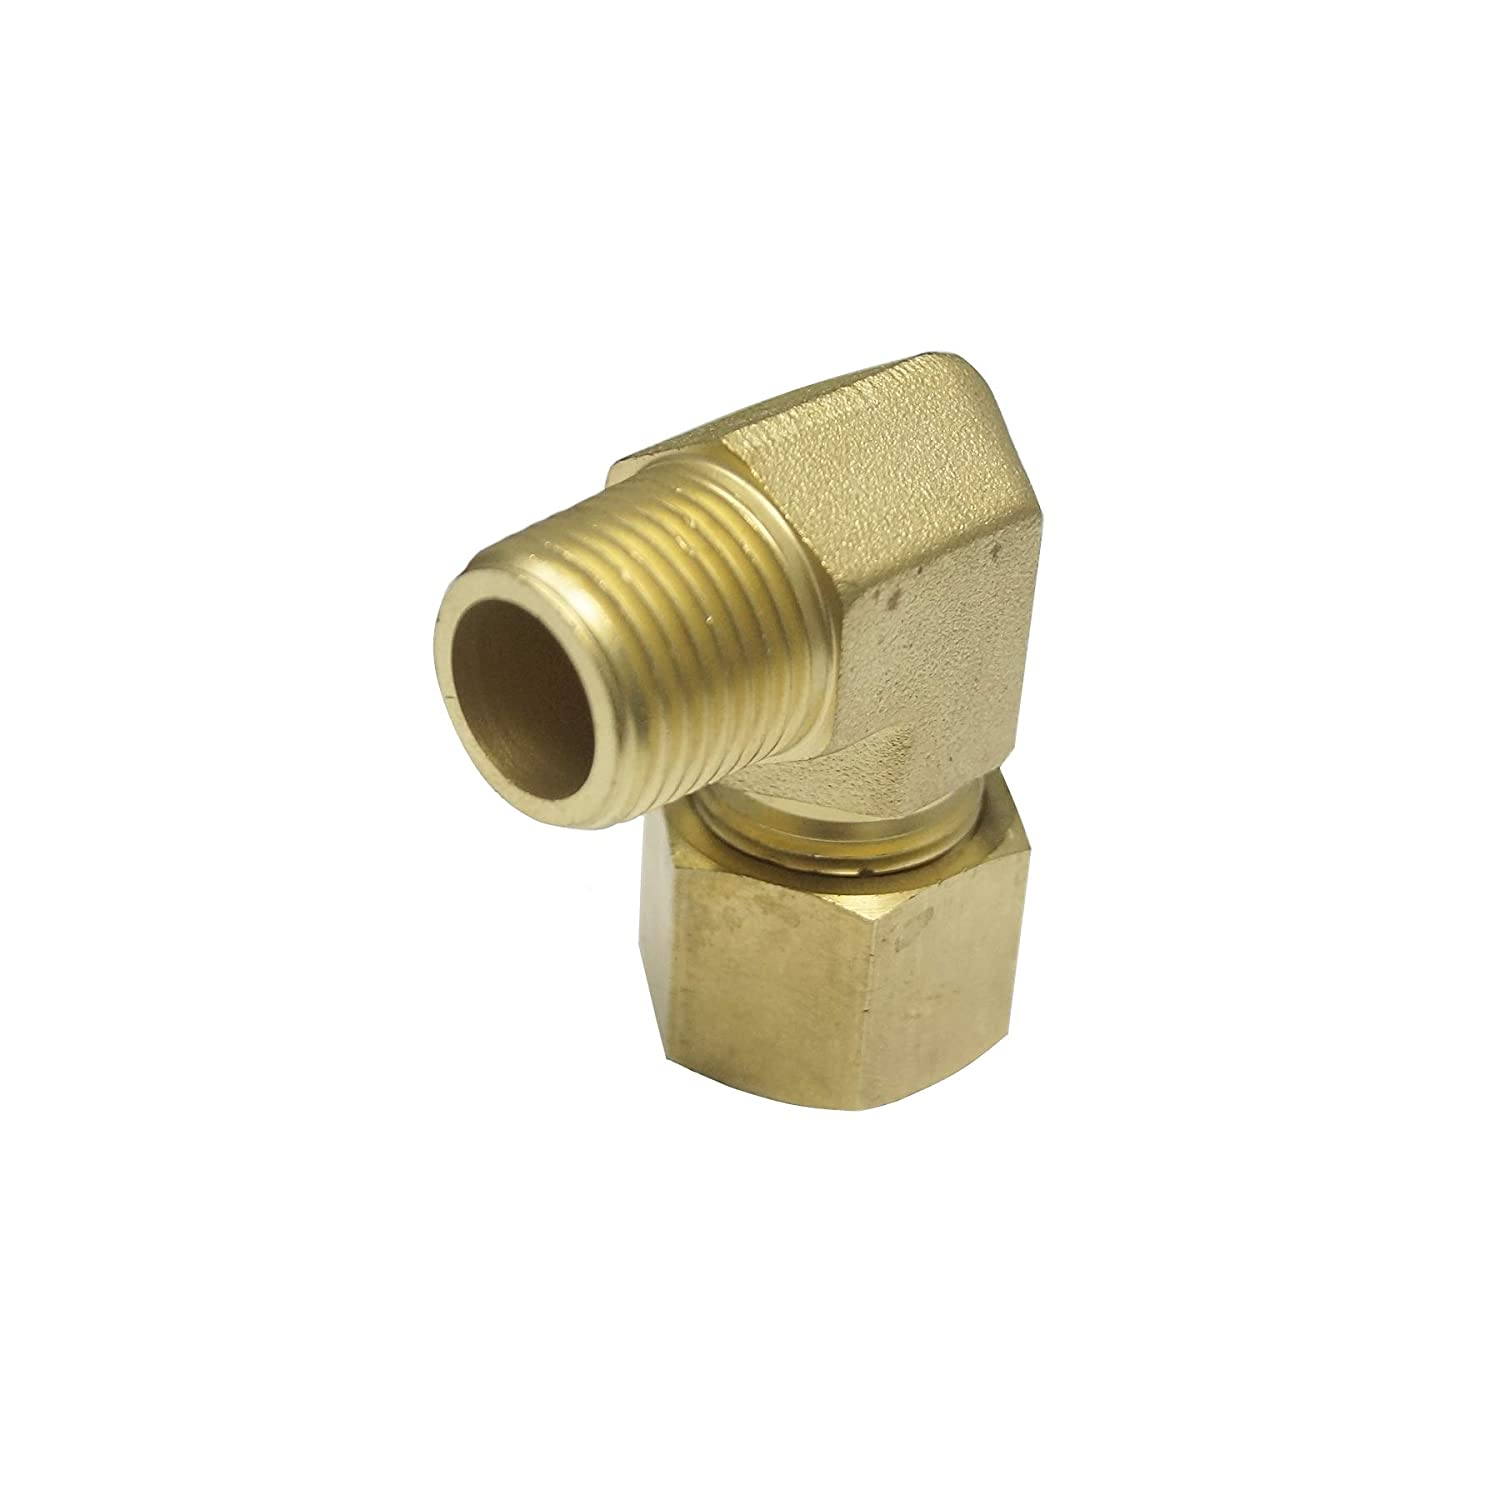 for 14MM OD Tube 90 Degree Male Elbow 14S x 1//2 NPT Male Thread Heavy Series Brass Material